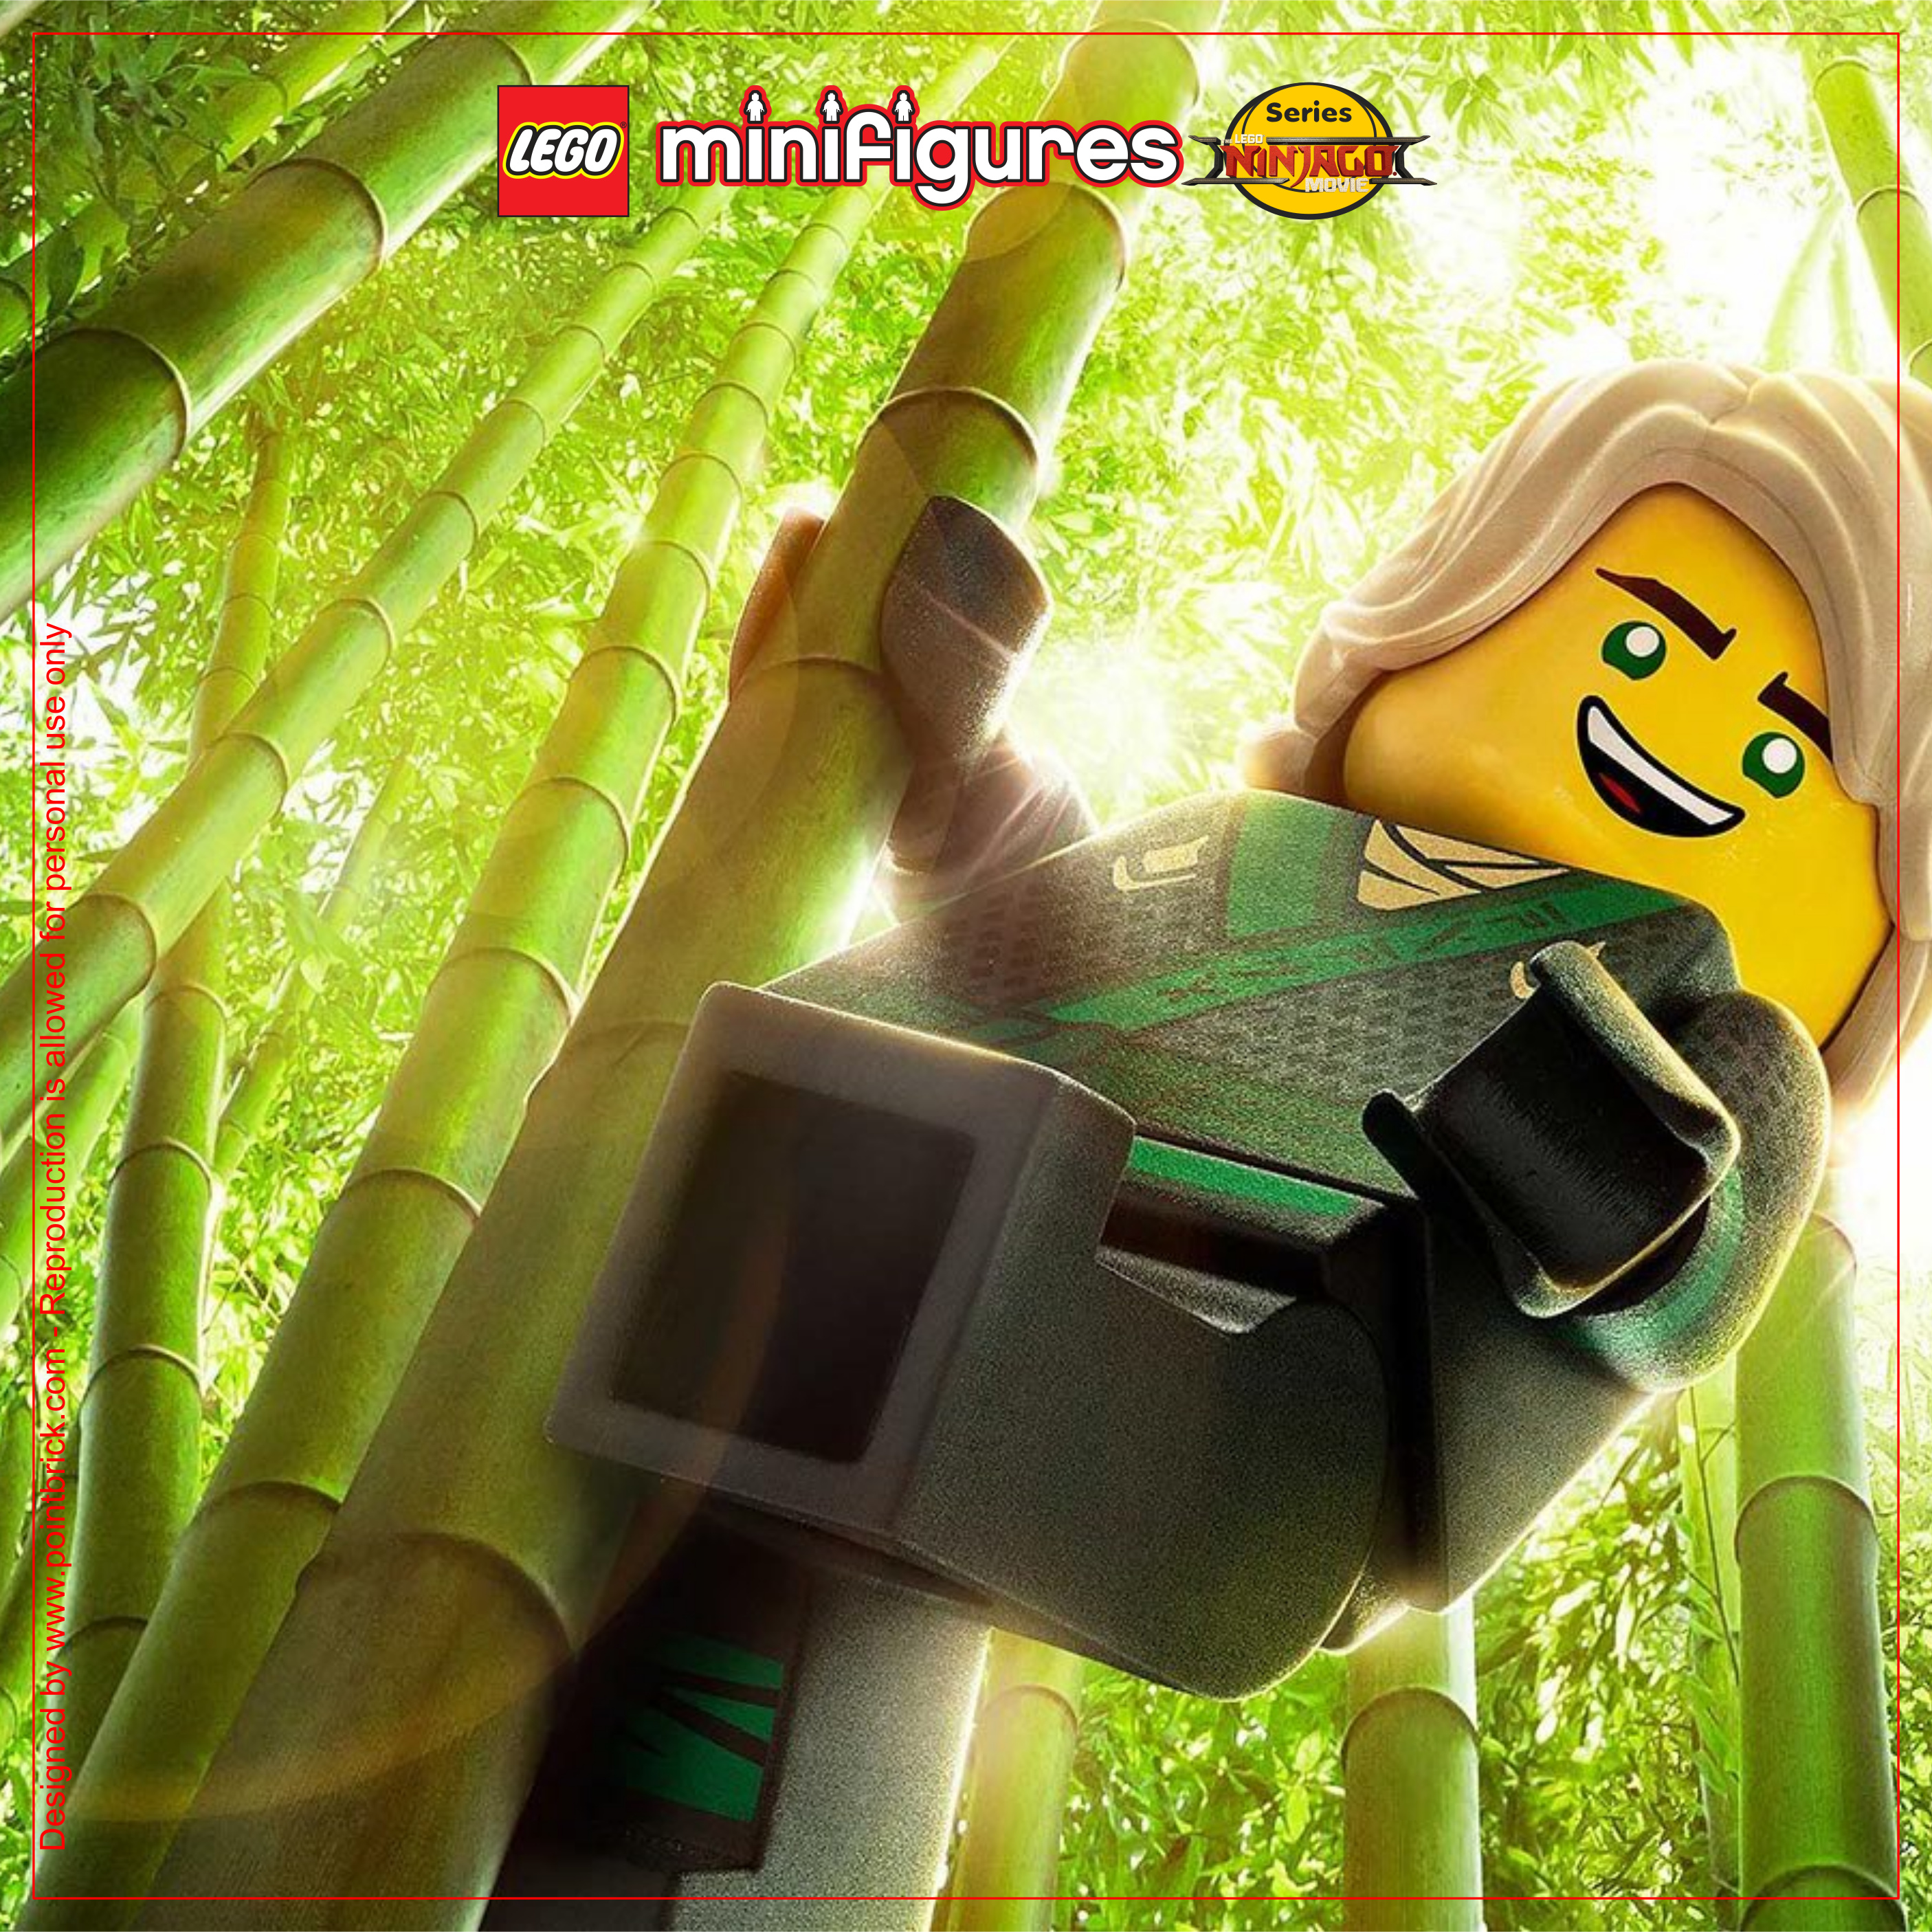 LEGO Minifigures 71019 The LEGO Ninjago Movie Lloyd - Display Frame Background 230mm Plexiglass - Clicca sull'immagine per scaricarla gratuitamente!